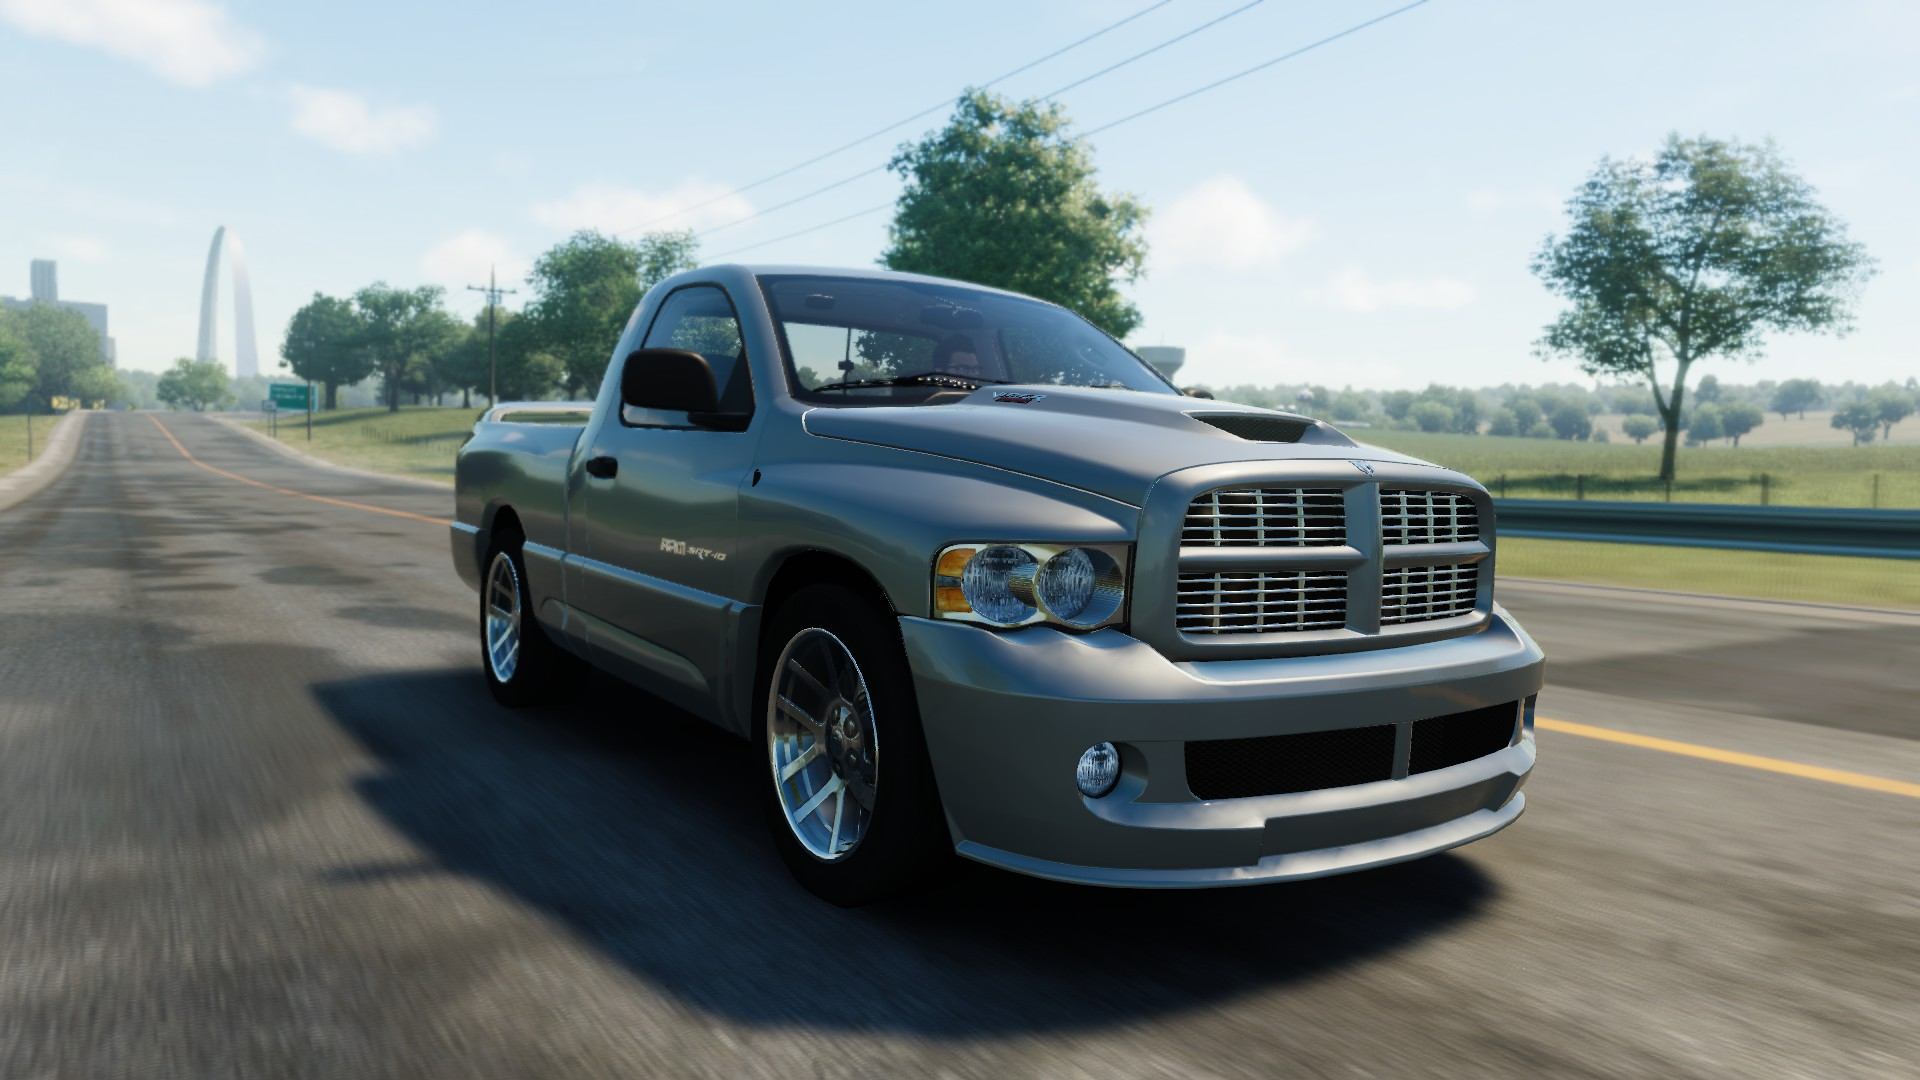 2004 Dodge Ram Srt 10 The Crew Wiki Fandom Powered By